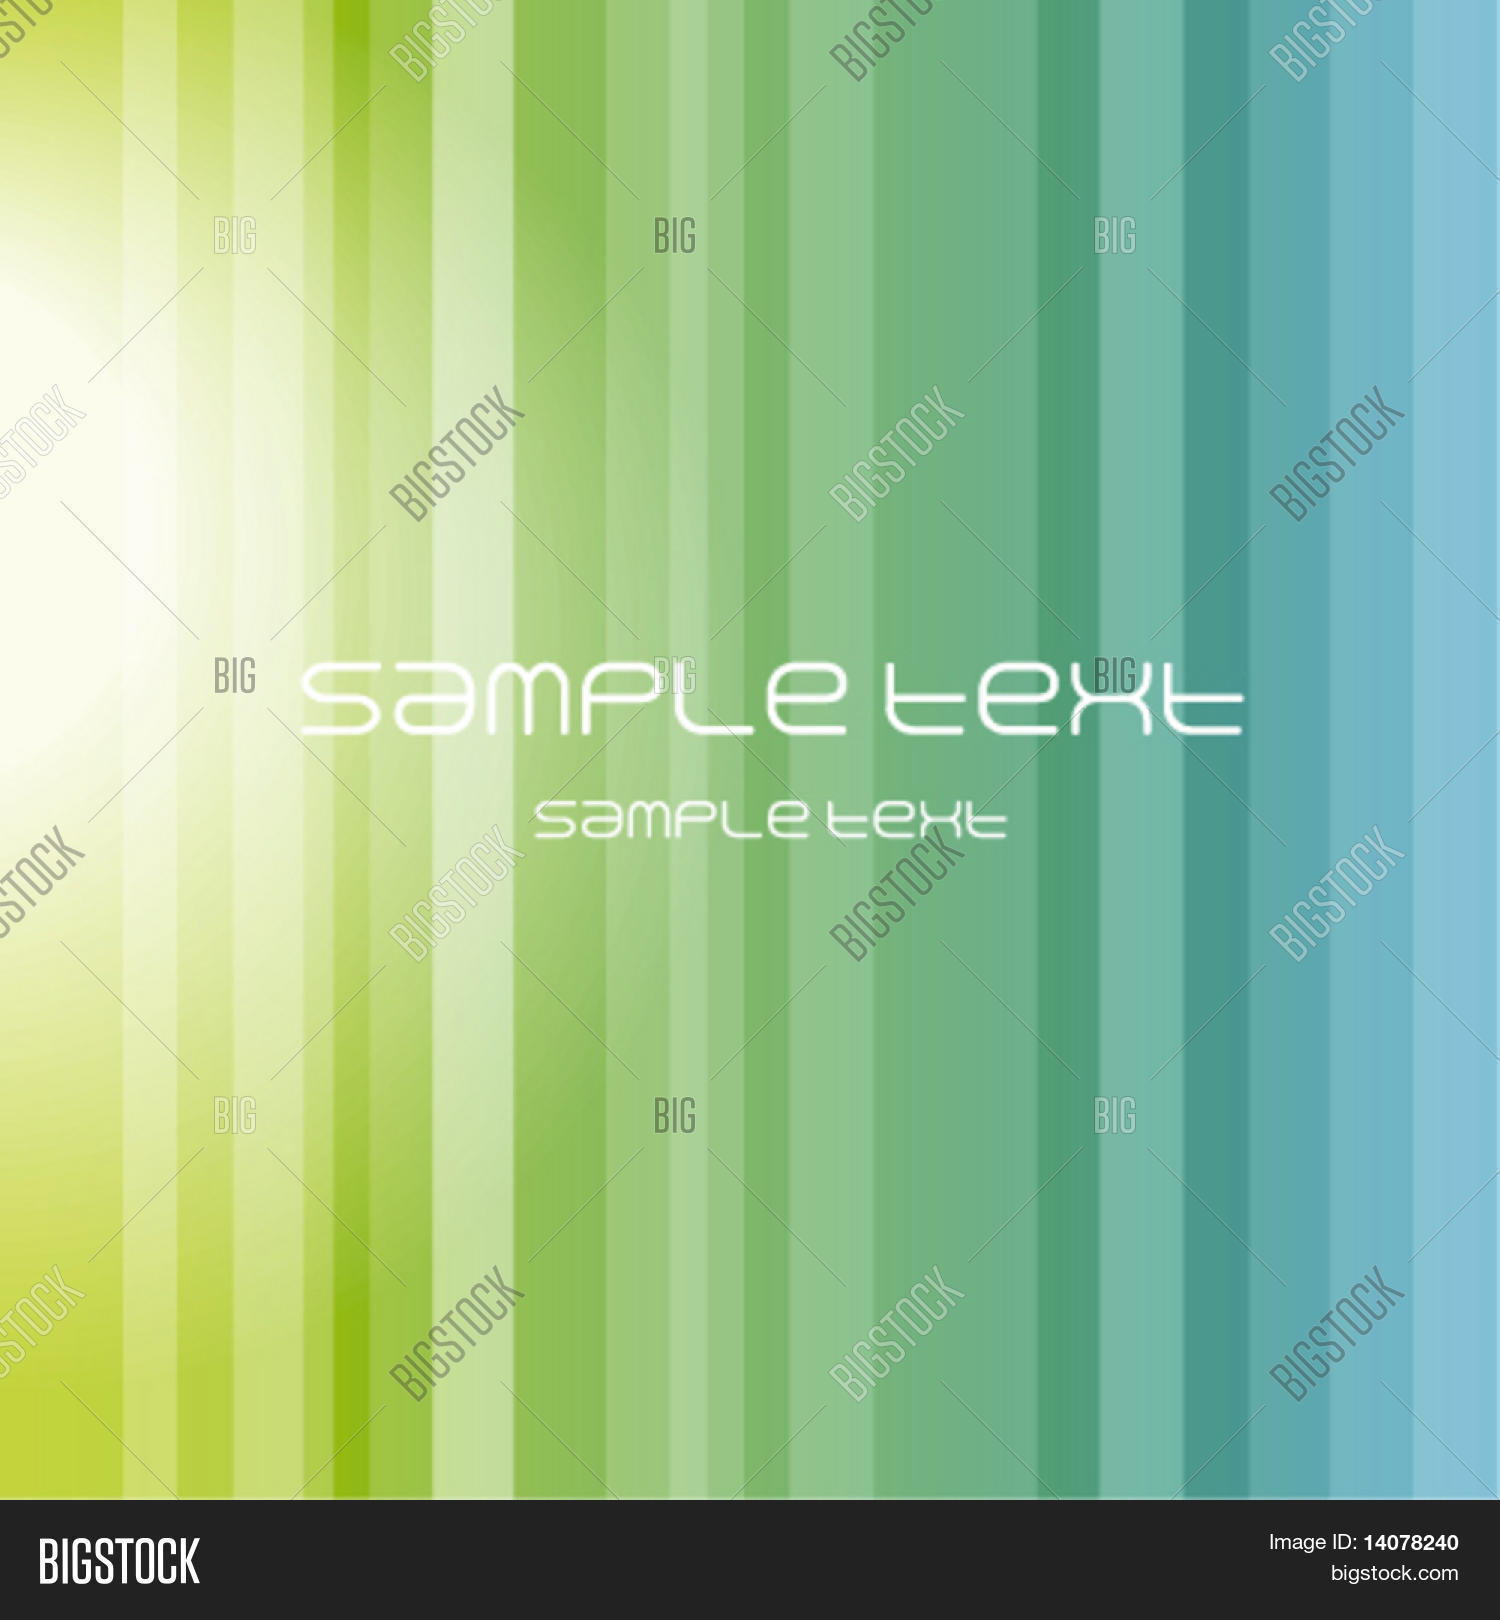 abstract,abstract background,abstract backgrounds,abstract background vector,artistic,backdrop,background,background abstract,background images,backgrounds abstract,beautiful background,beauty,beauty background,branding,card,color,colorful abstract background,concept,contemporary,copy,corporate,corporate background,creative,decorative,design,digital,element,futuristic,gradient,gradient background,graphic,green,green abstract background,header,illustration,image,light,modern,popular,presentation,screen,space,striped,striped background,template,text,texture,trade,trendy,vector,wallpaper,web